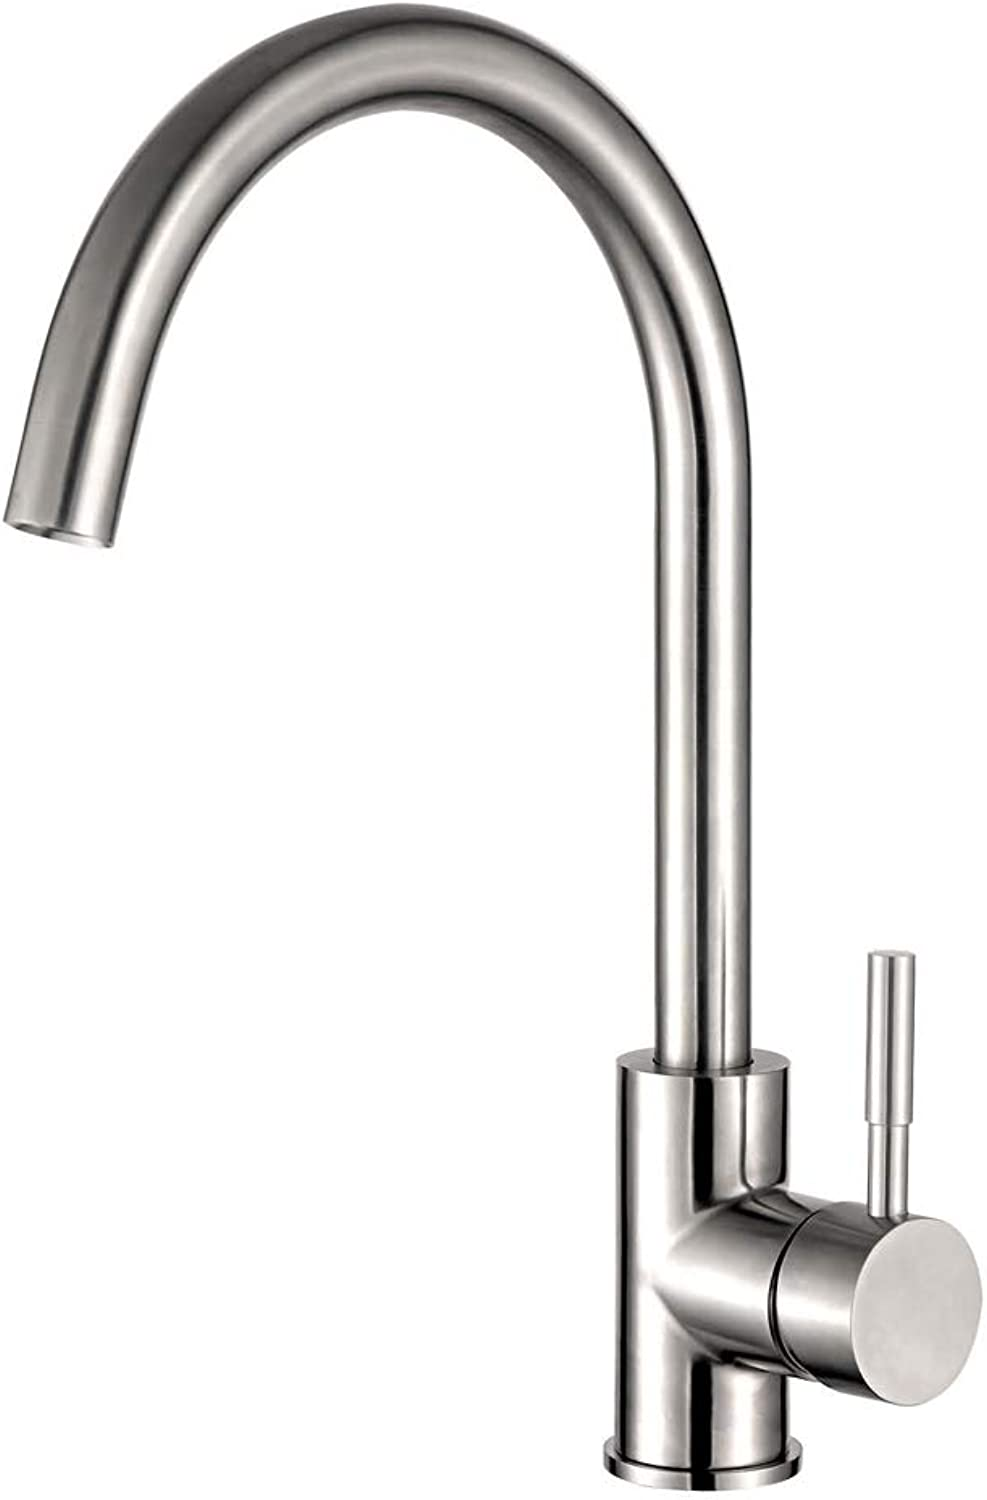 Kitchen Faucet, Stainless Steel Faucet, 360° redating Kitchen Sink Faucet, Hot and Cold Single Handle Kitchen Faucet